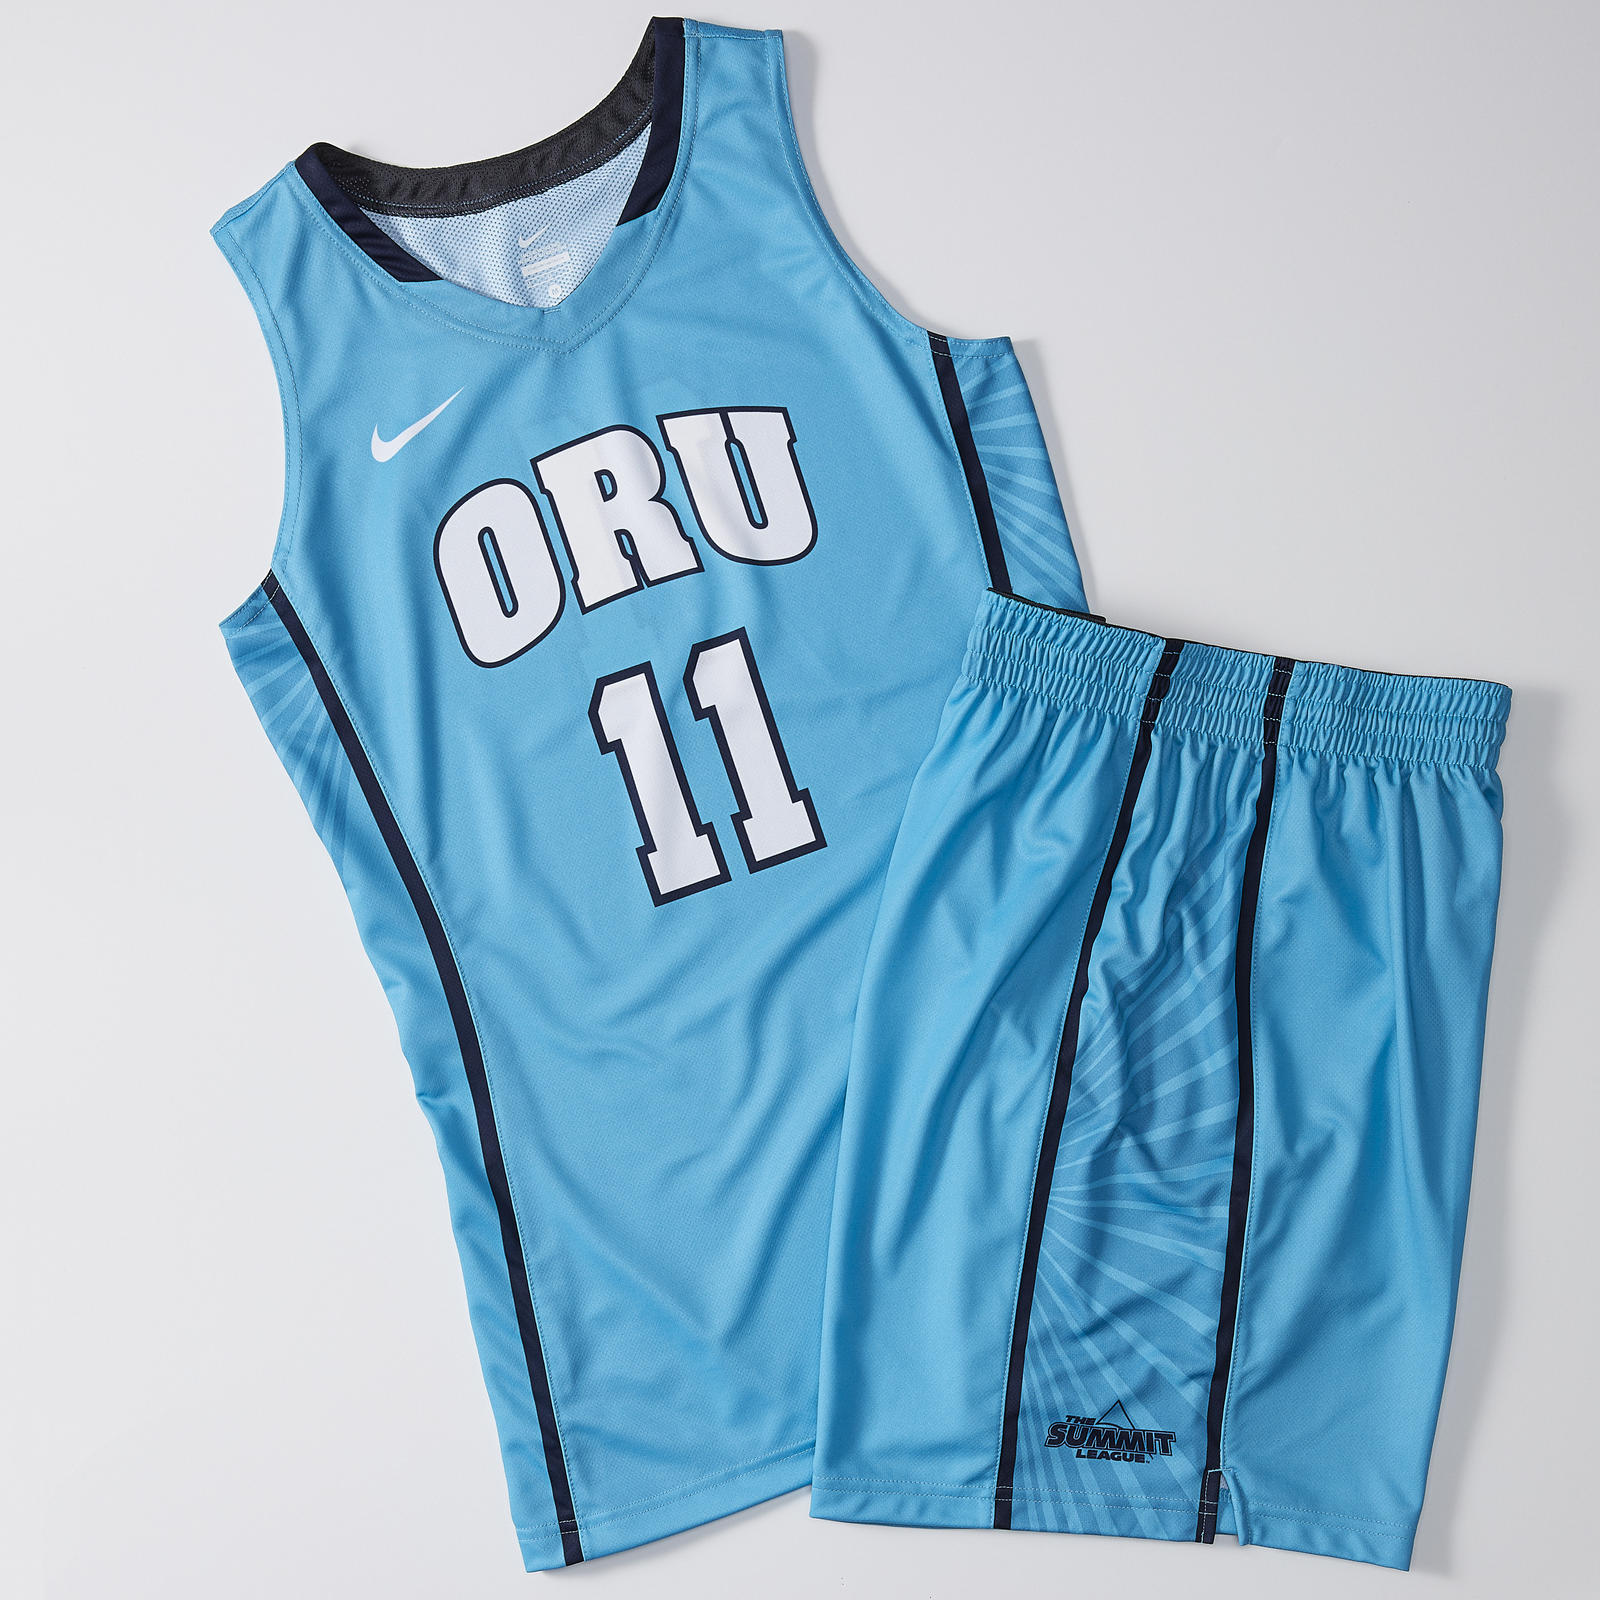 Nike N7 College Basketball Jerseys 201819  Nike News